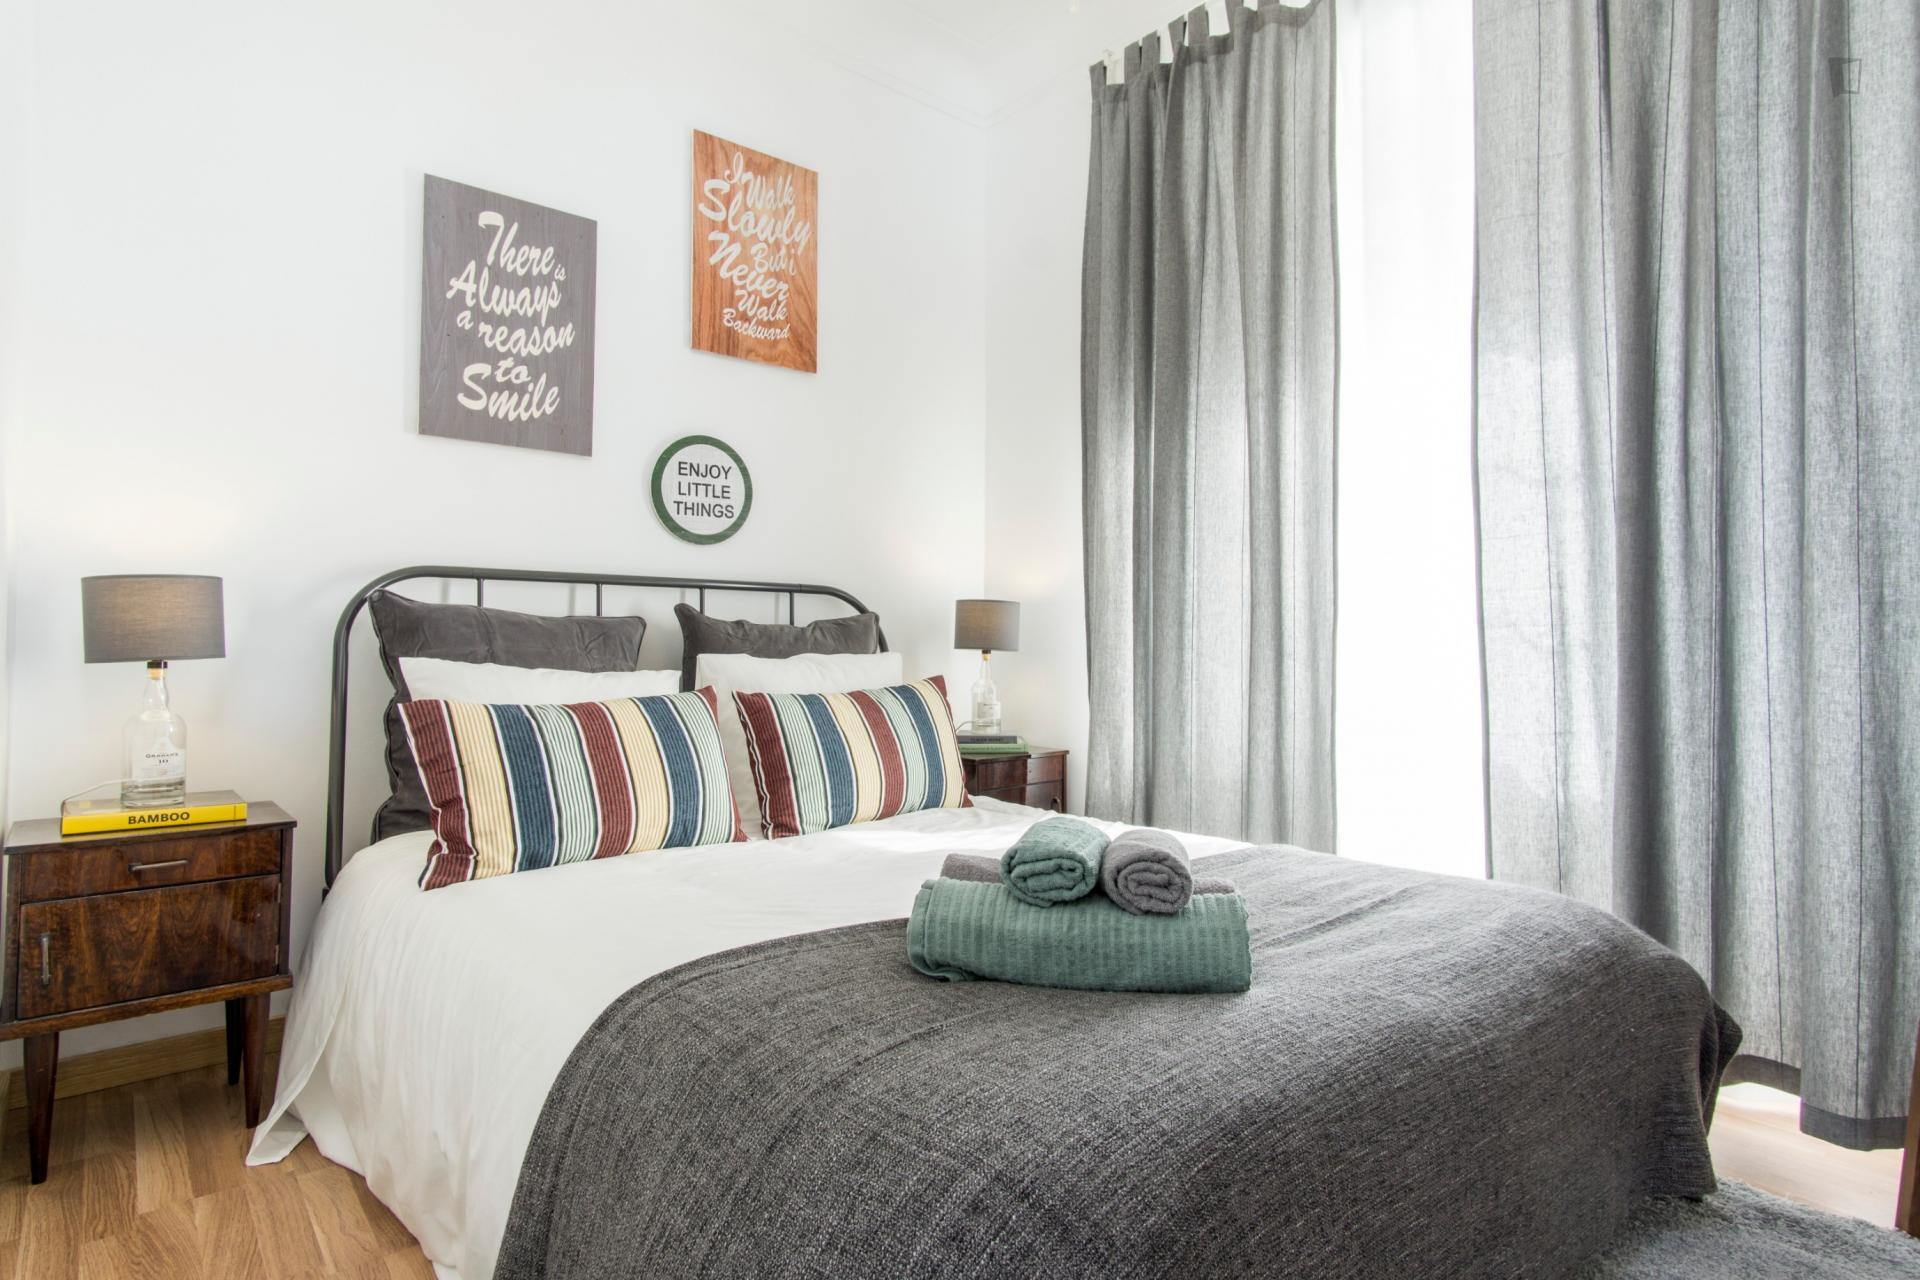 Boaventura - Lovely furnished apartment in Lisbon